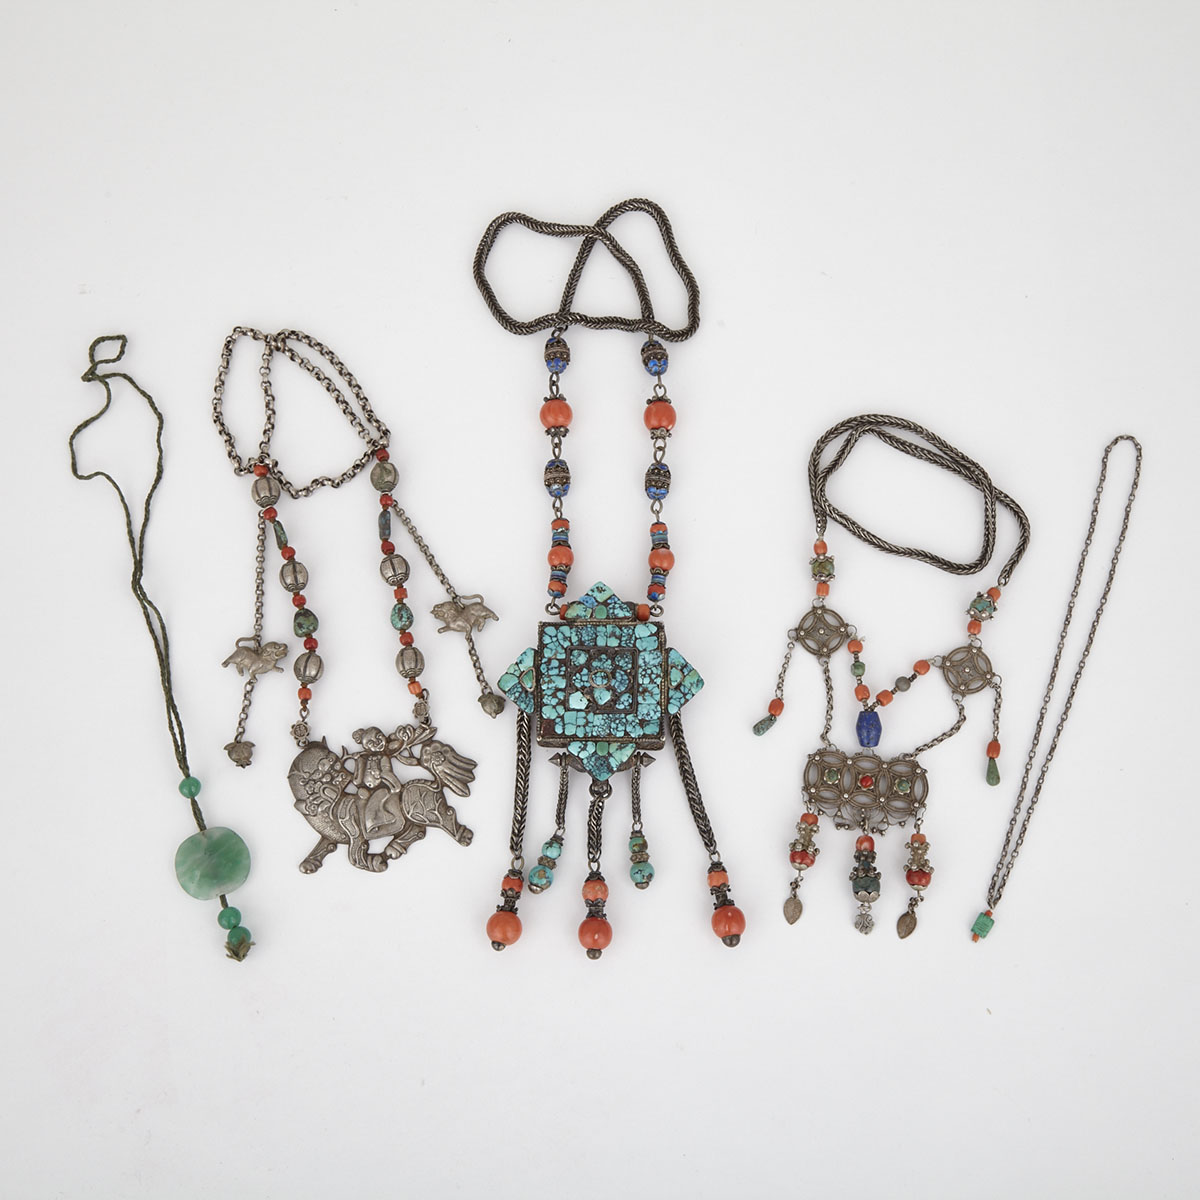 Group of Five Tibetan Necklaces, Early 20th Century